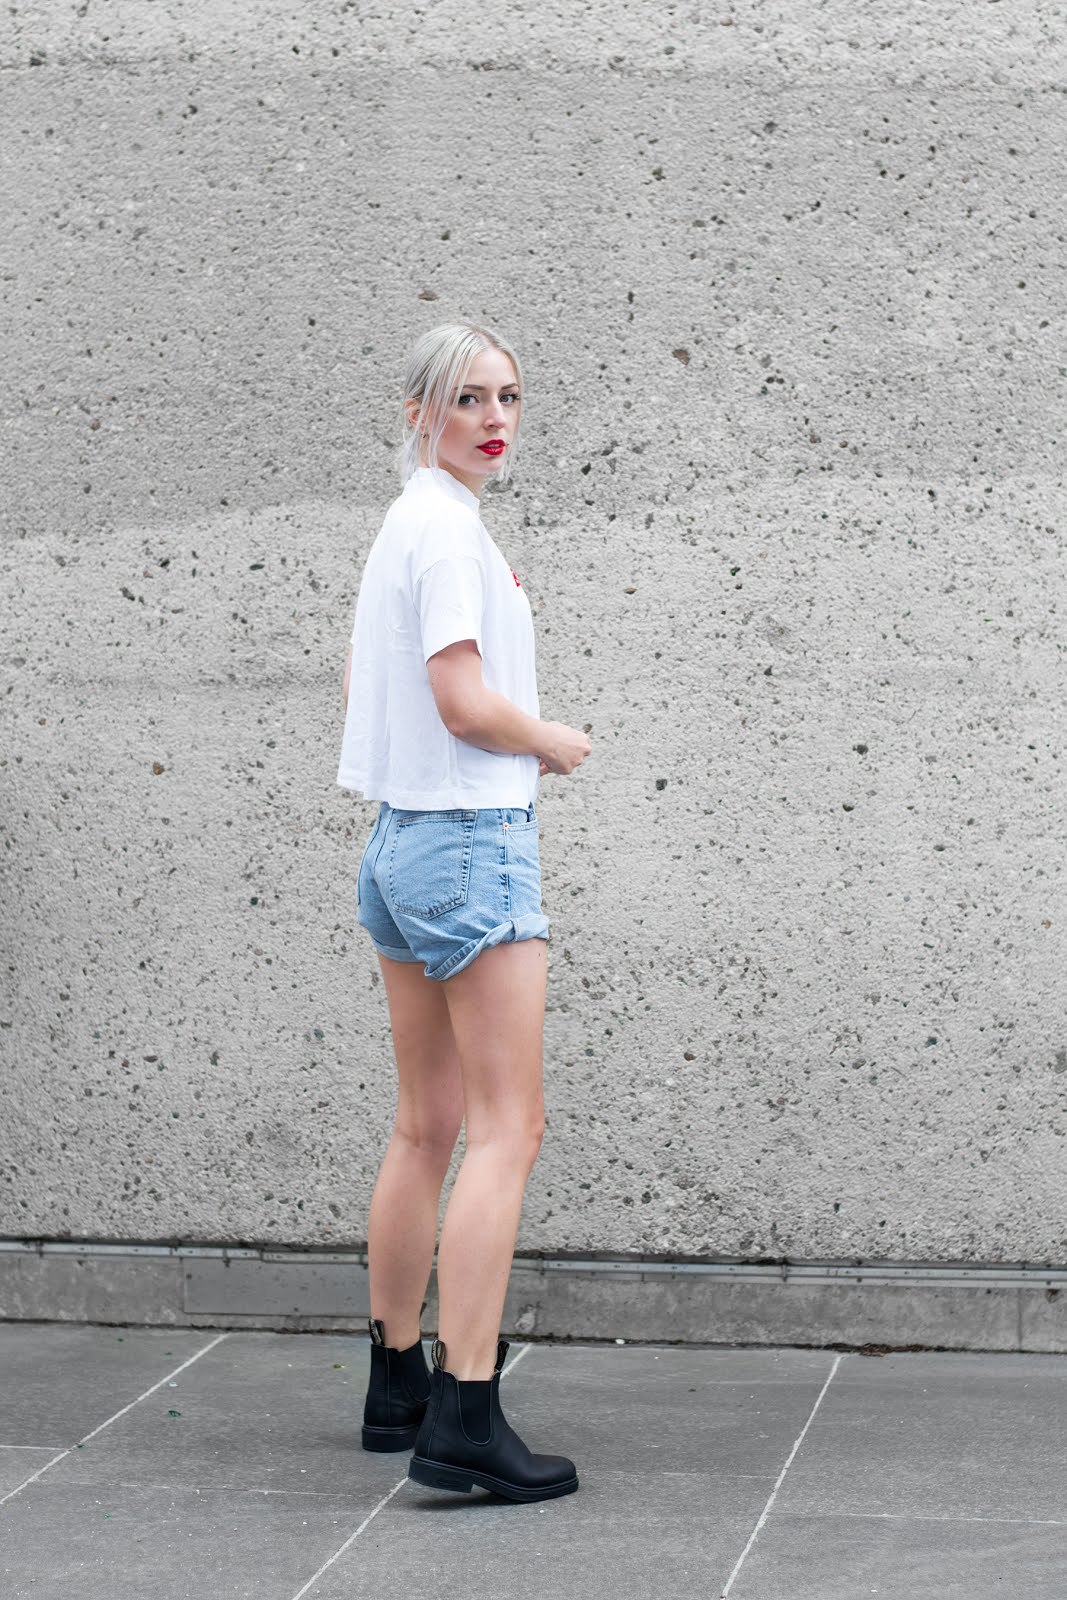 Bomber jacket, bershka, black, denim mom shorts, weekday carrie t-shirt, outfit, street style, belgium, blundstone boots, motorcycle boots, women, fashion